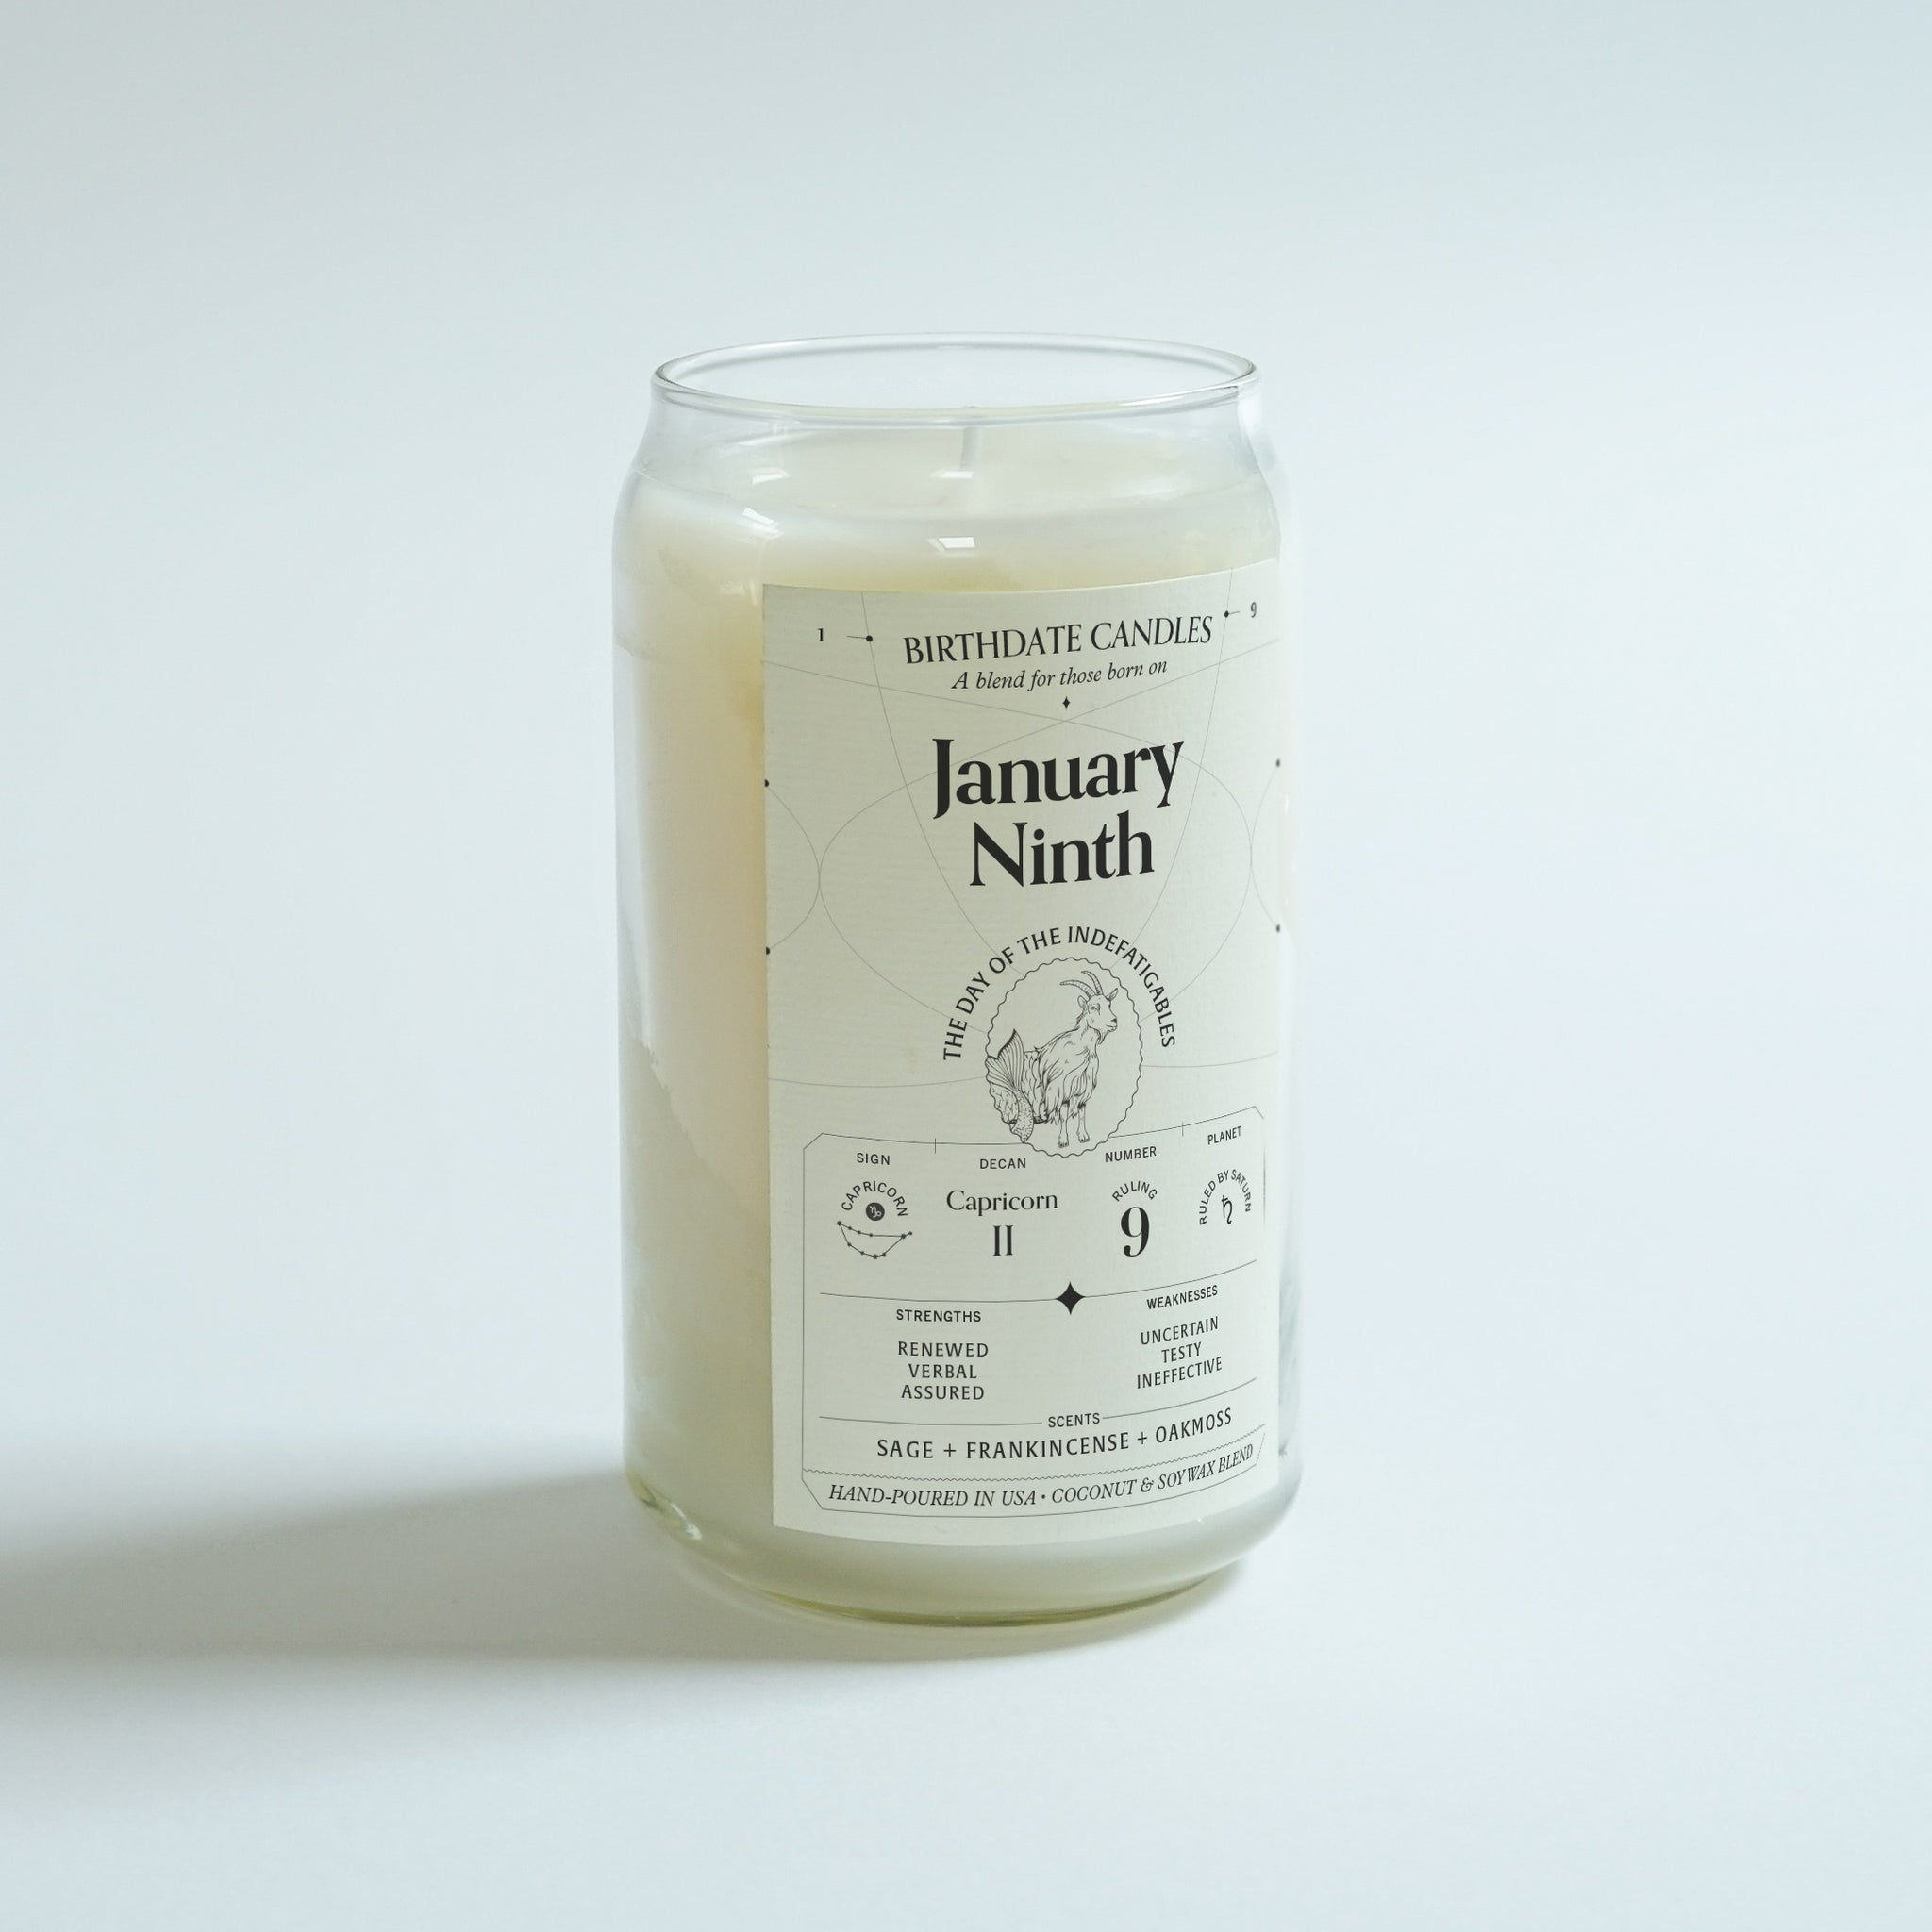 The January Ninth Birthday Candle